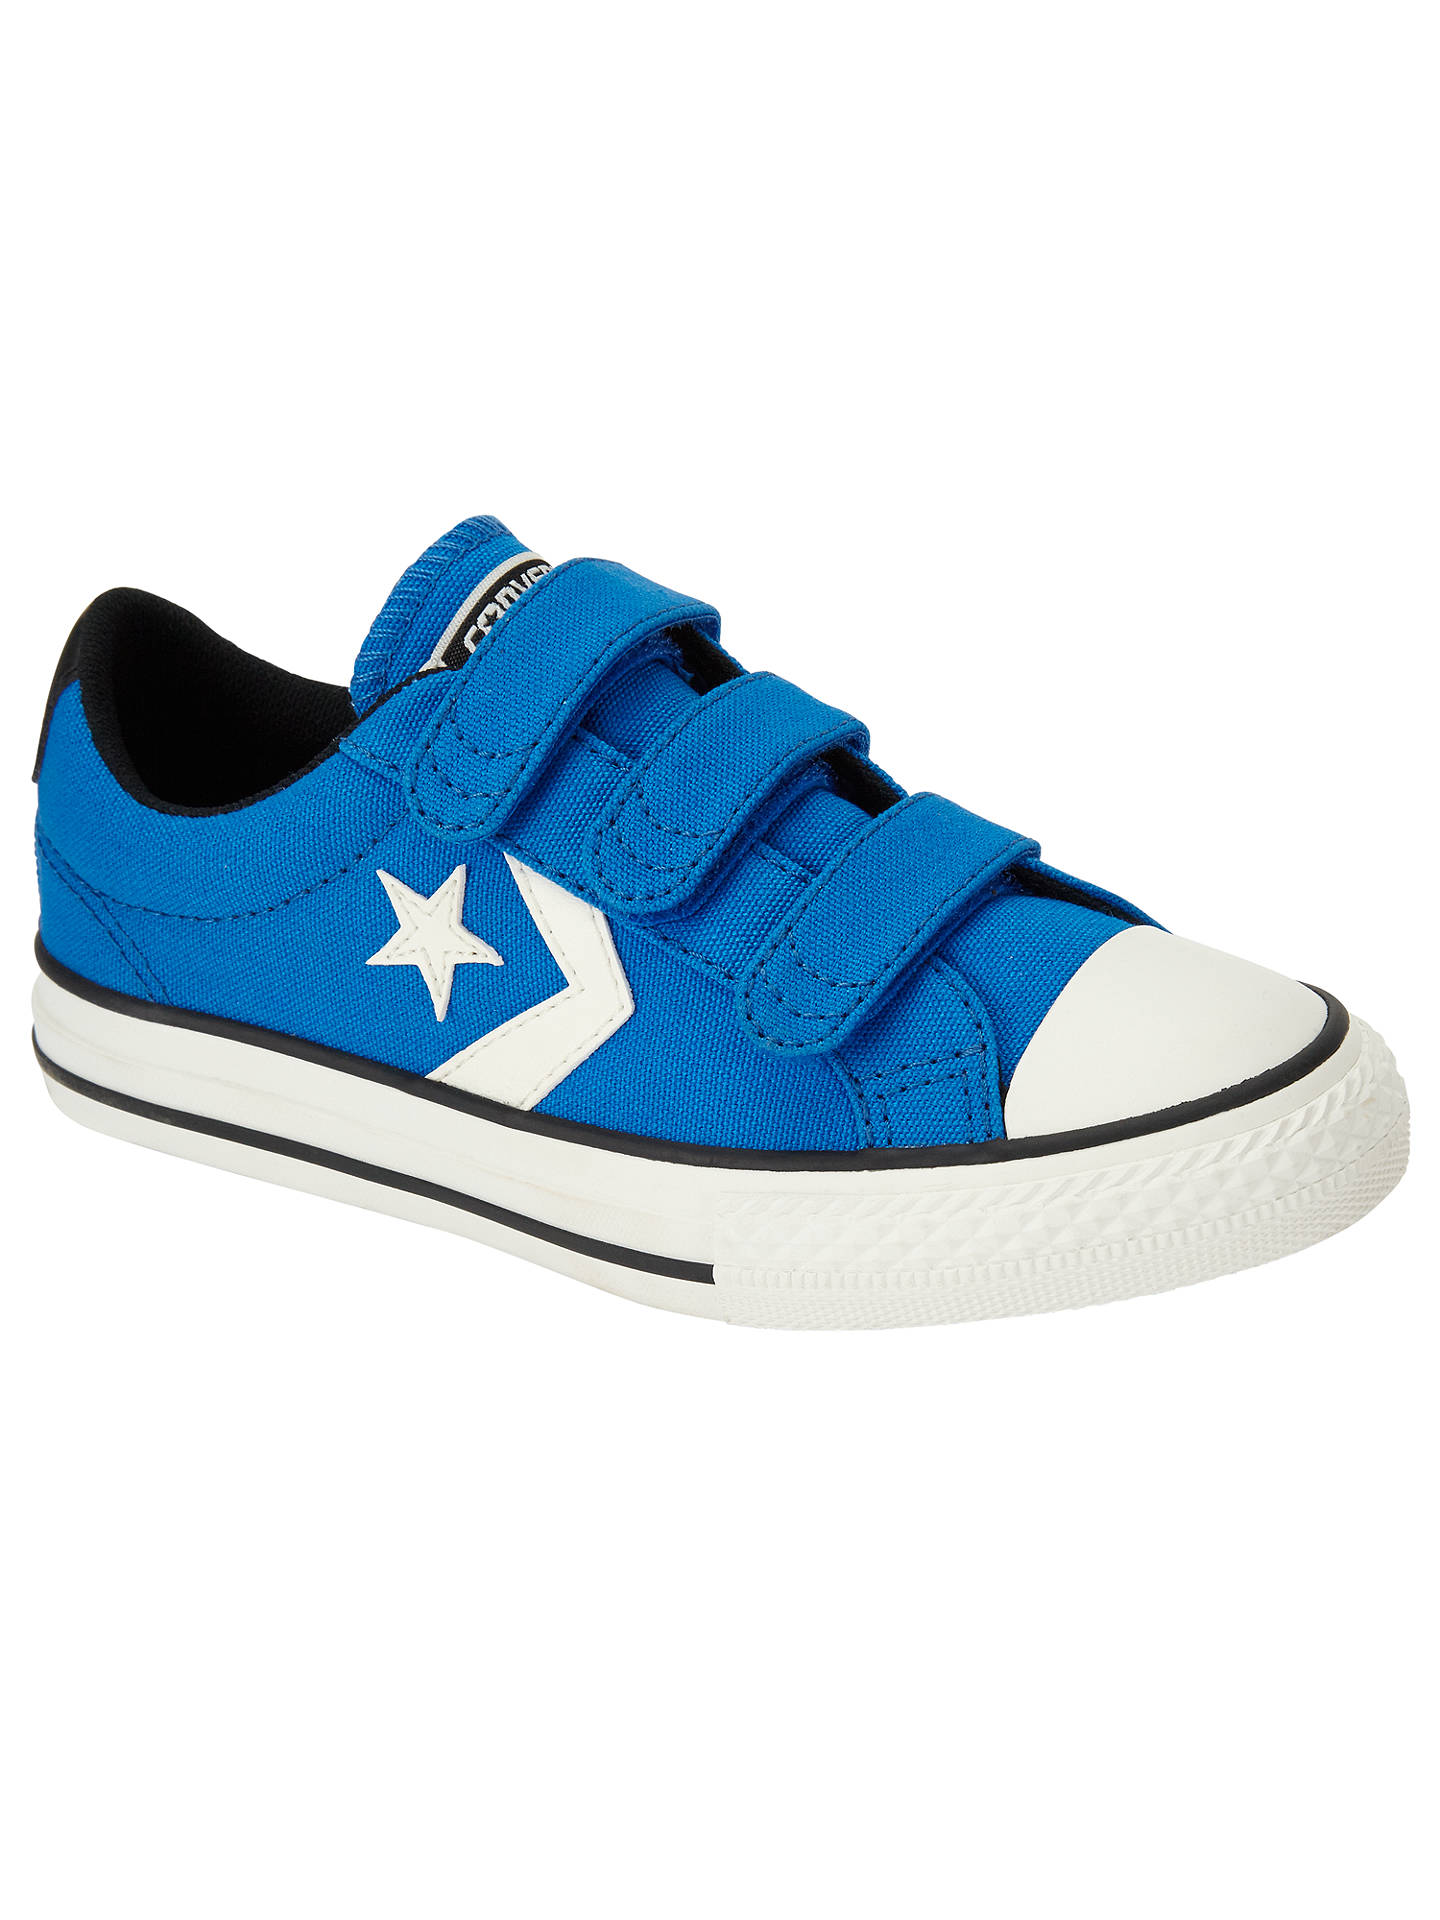 f50f71a499d3 Converse Children s Star Player 3V Triple Riptape Shoes at John ...